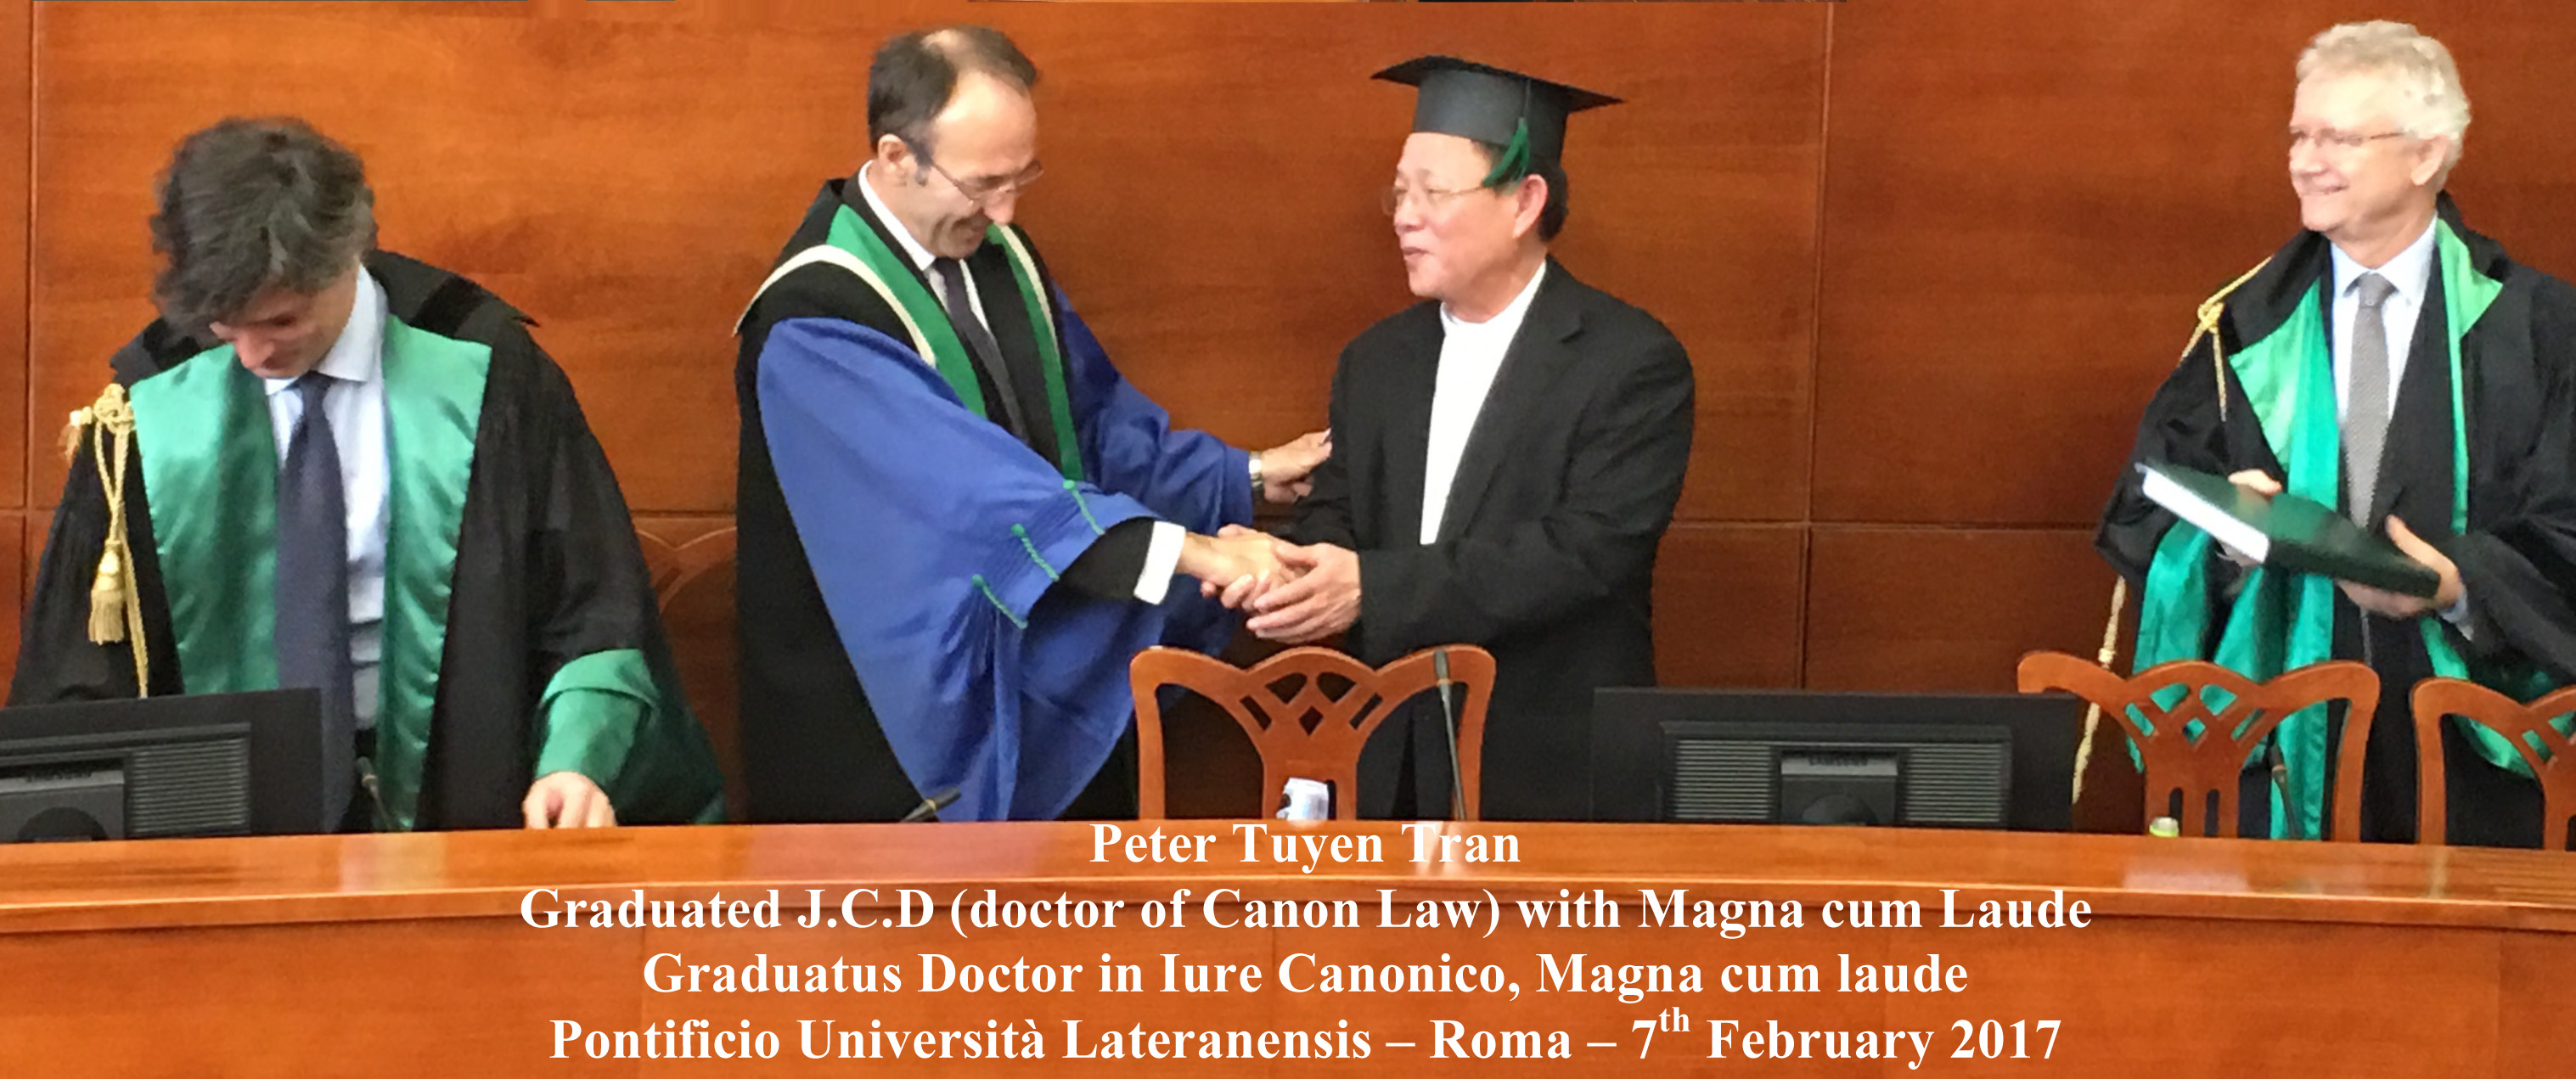 Microsoft Word - Doctorate defense 7.2.2017 Lateran.docx